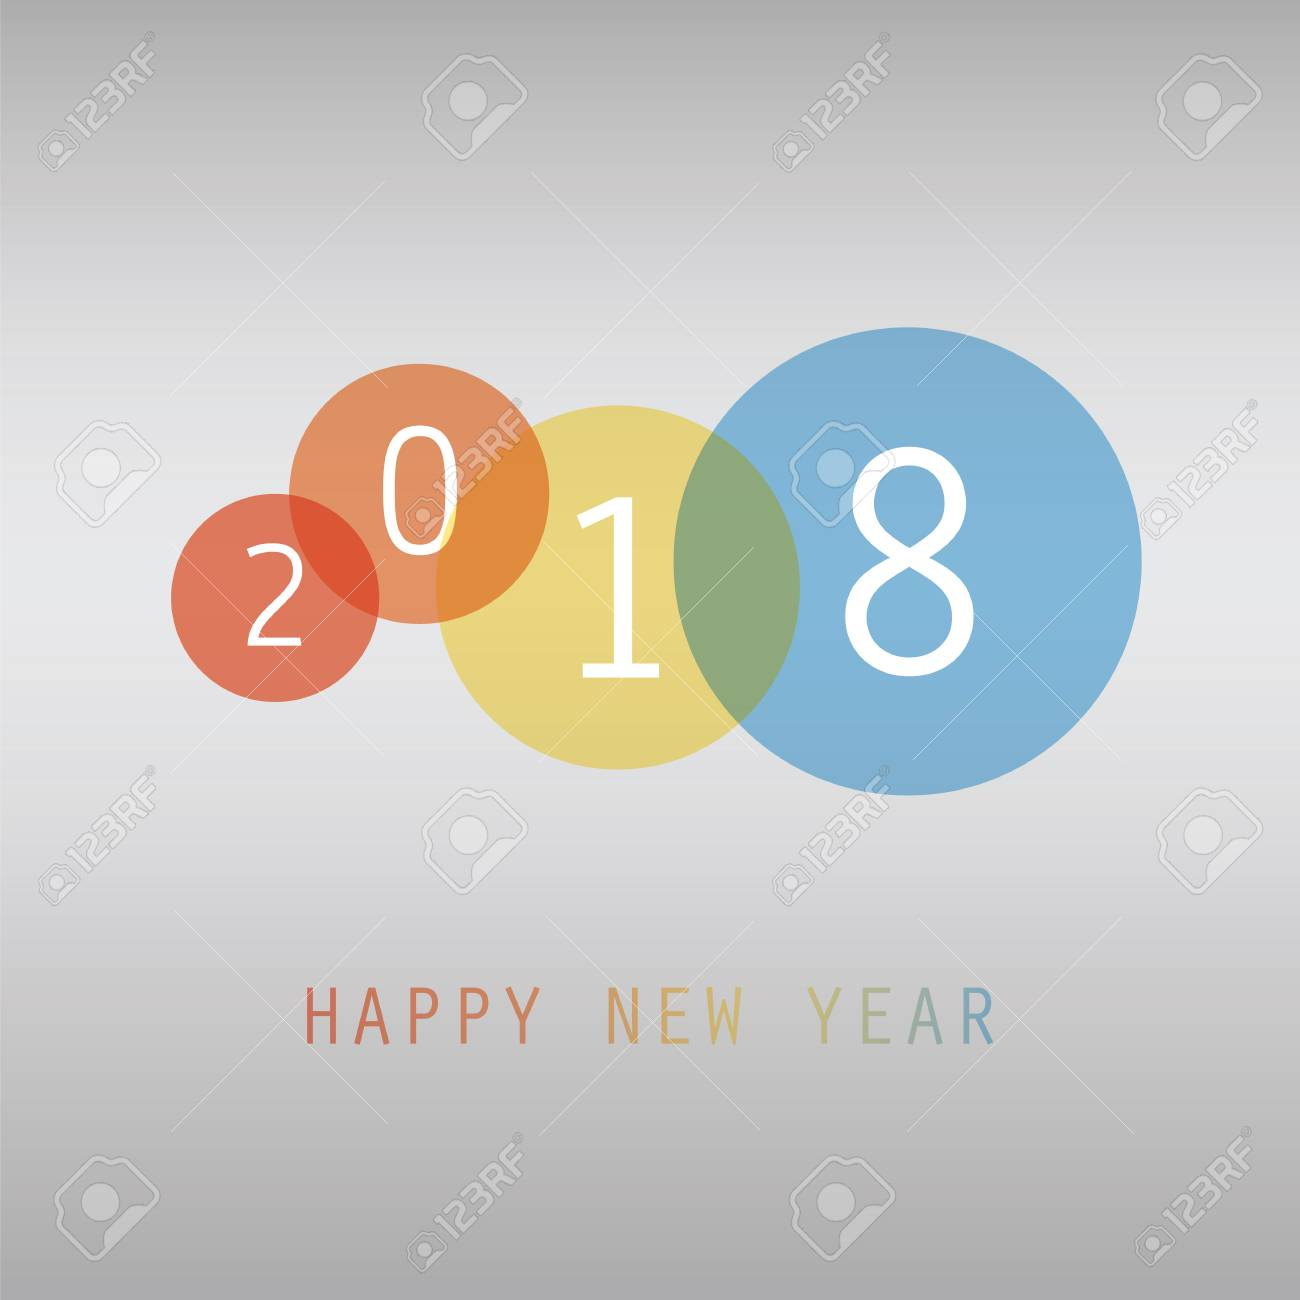 best wishes simple colorful new year card cover or background design template 2018